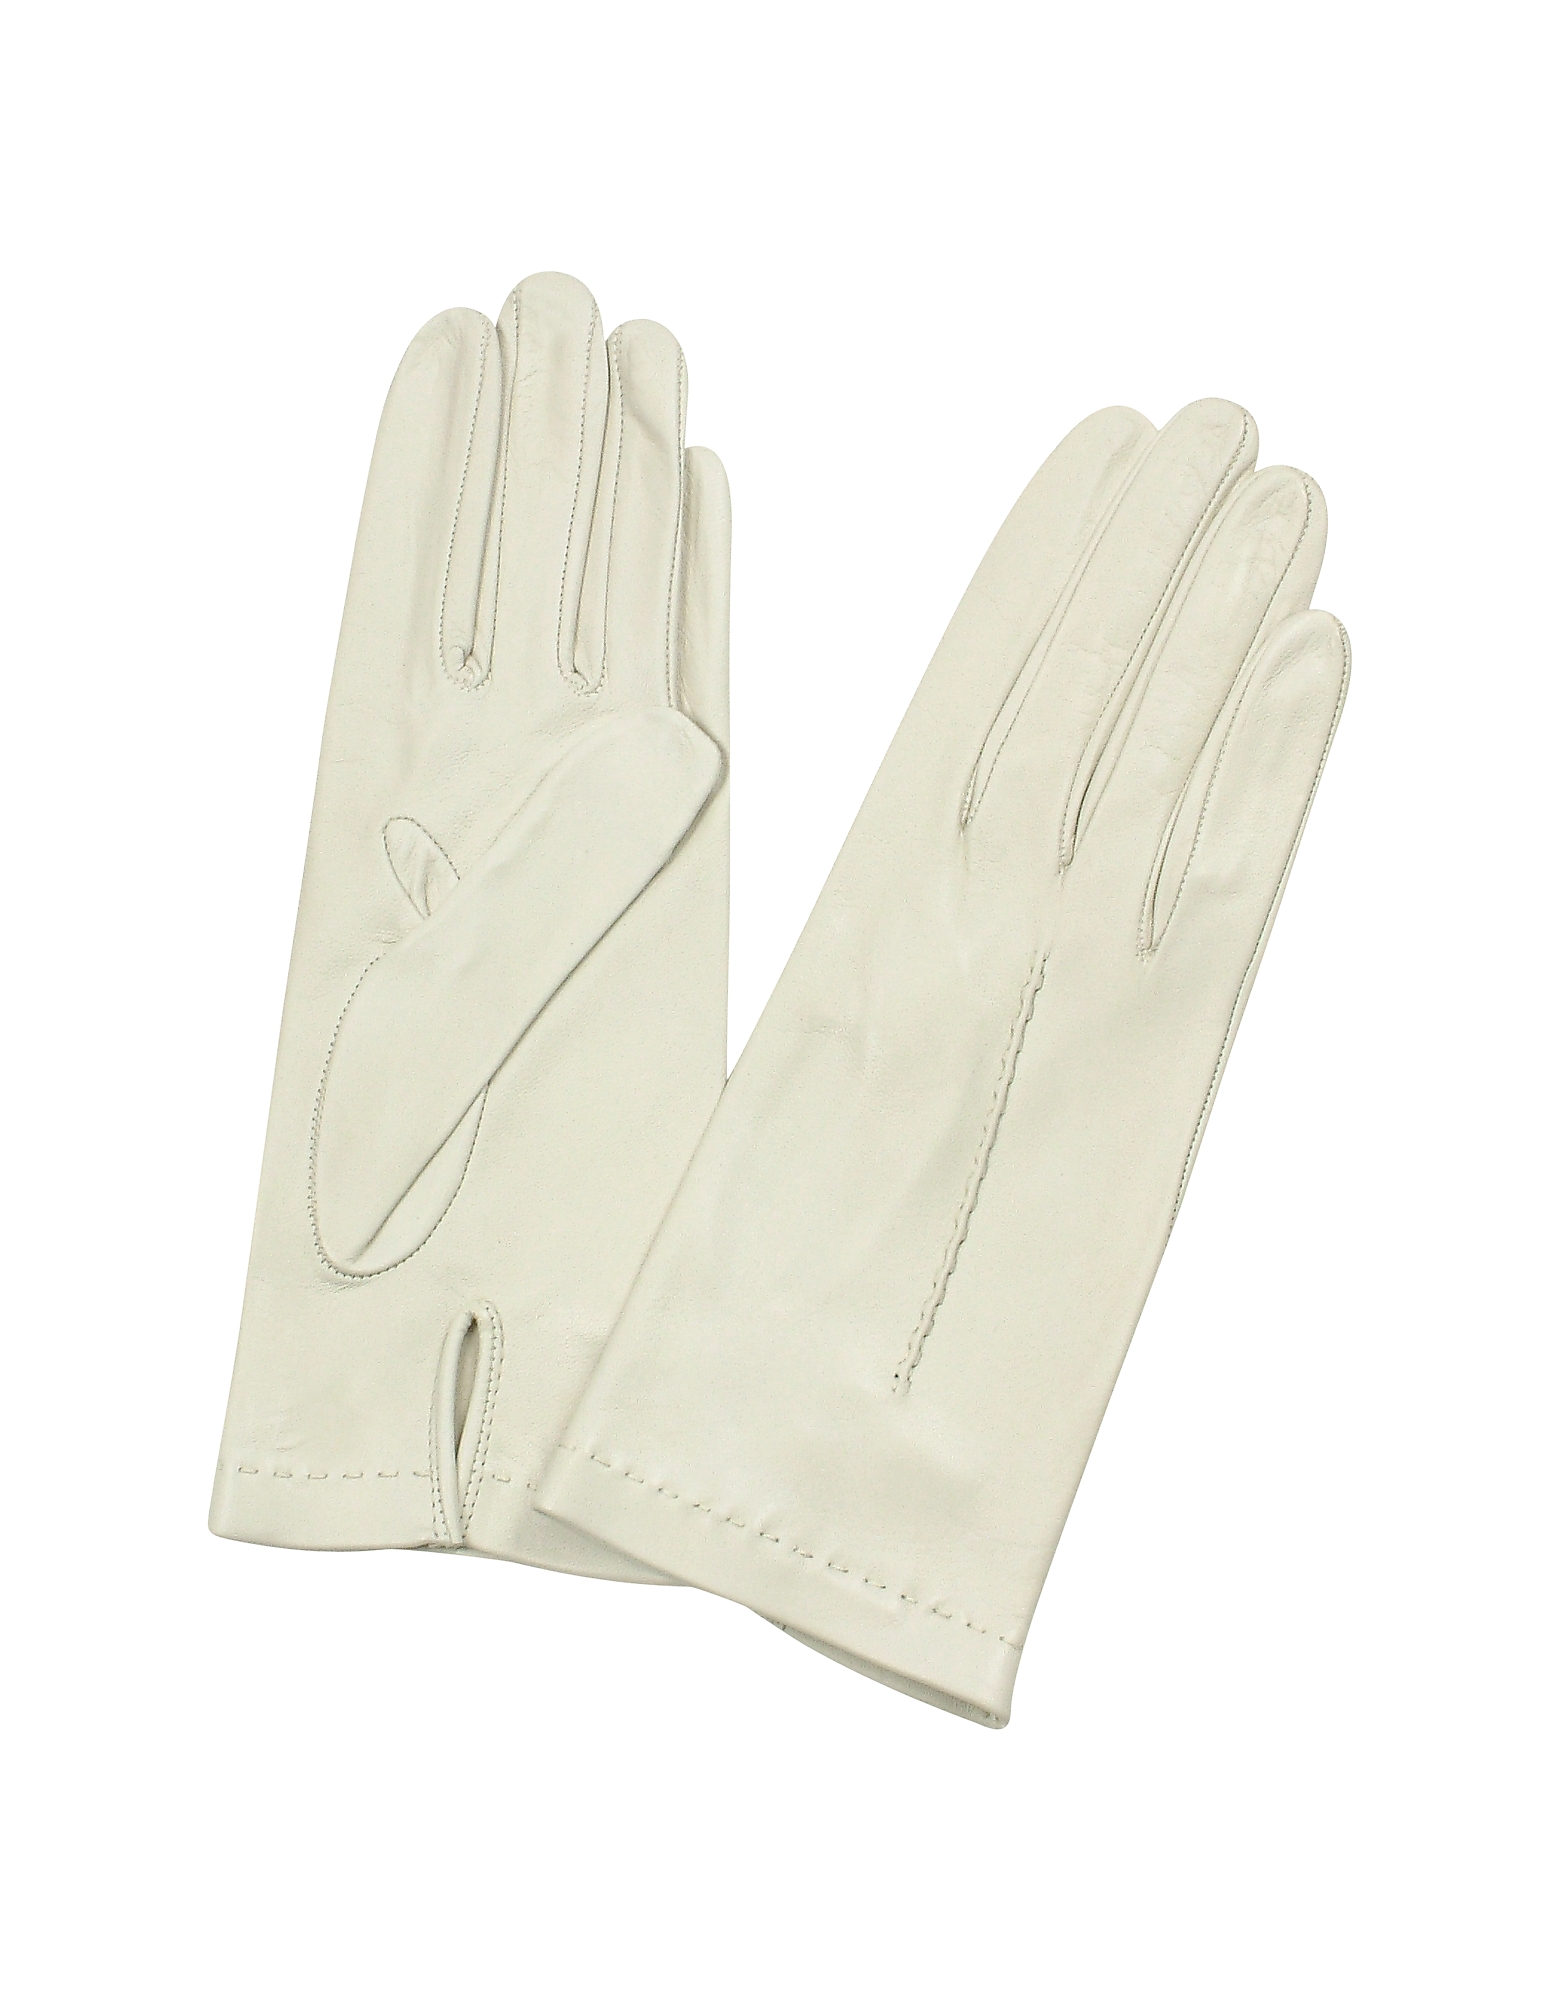 1940s Dresses and Clothing UK | 40s Shoes UK Forzieri Designer Womens Gloves Womens Ivory Unlined Italian Leather Gloves $132.00 AT vintagedancer.com